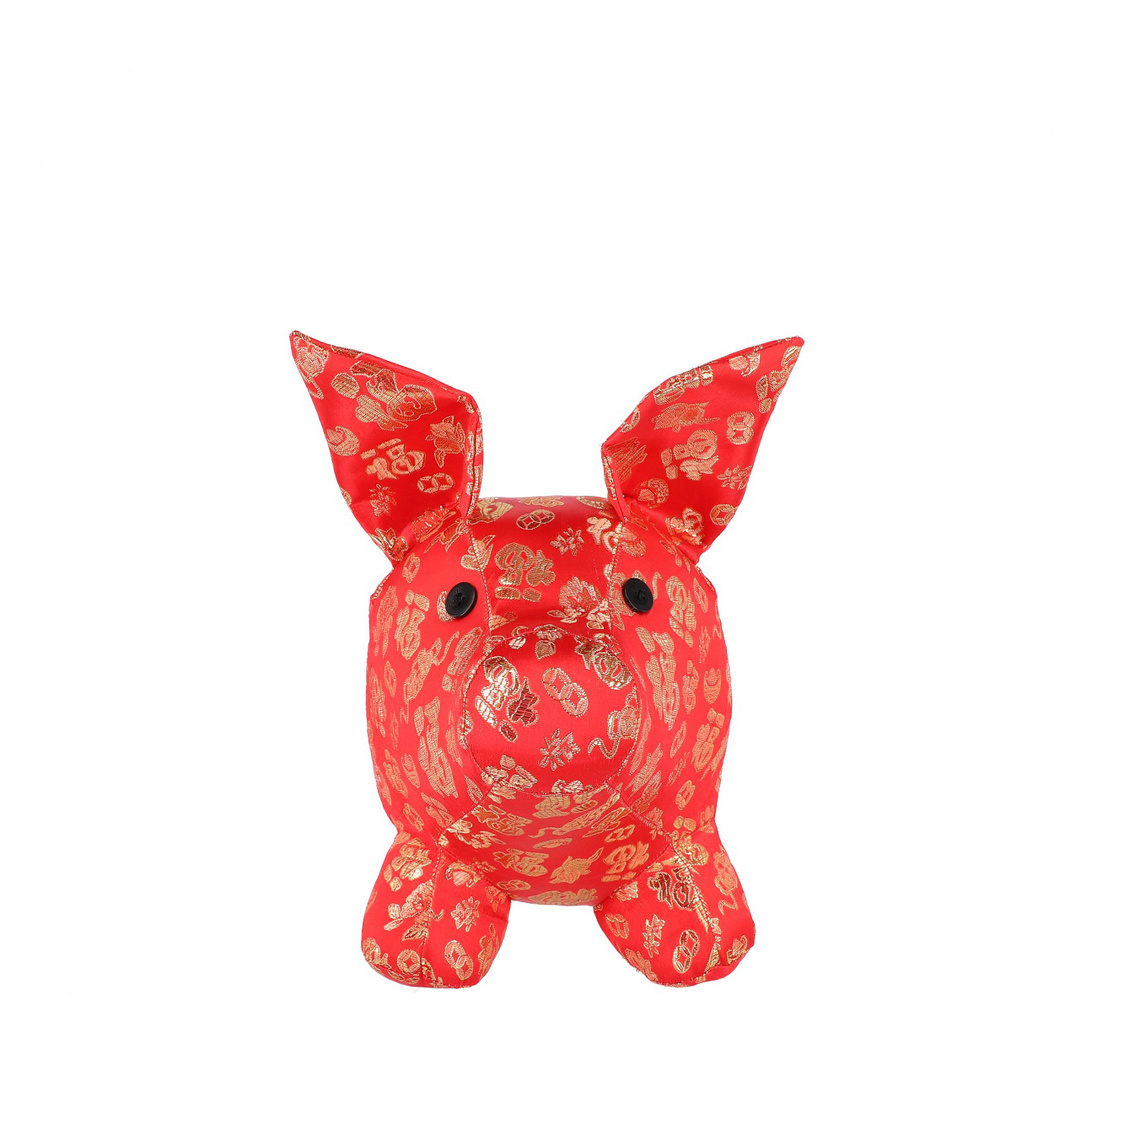 Large Mascot Pig Decoration in Red with Gold Threads